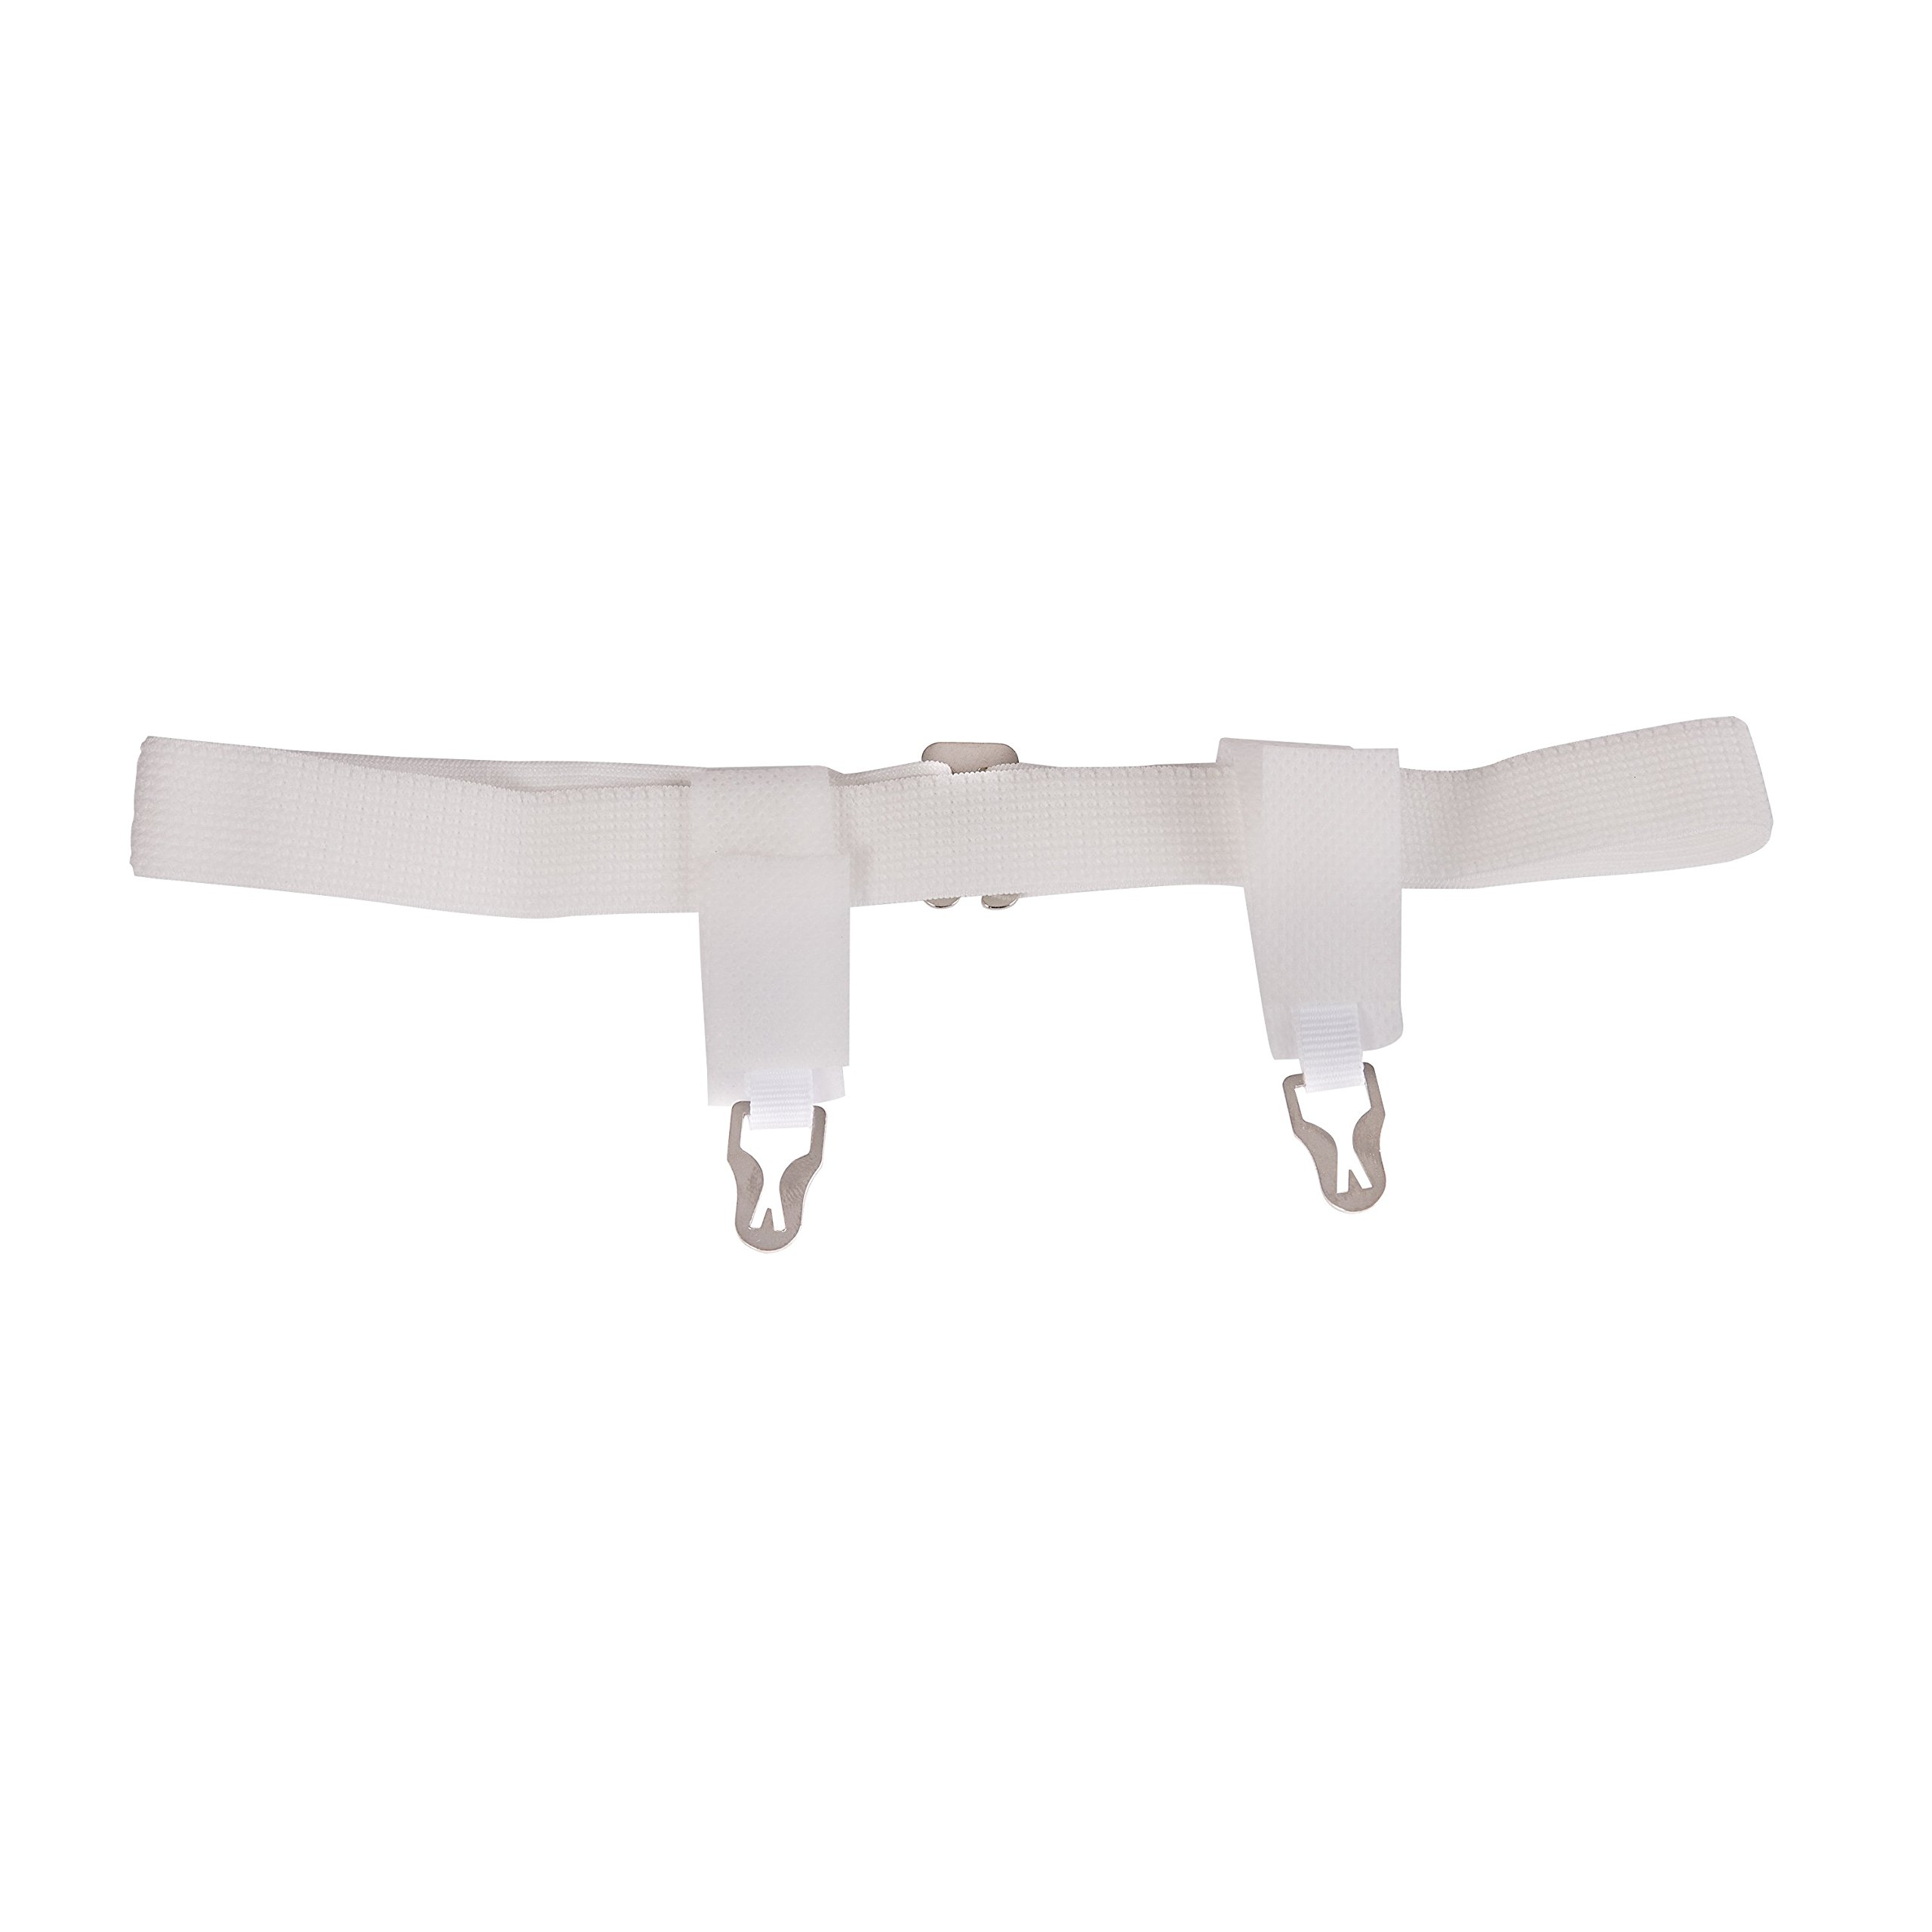 DMI Sanitary Belts with Adjustable Hook and Eye Closure, 22 to 42 Inches, White, 6 Dozen